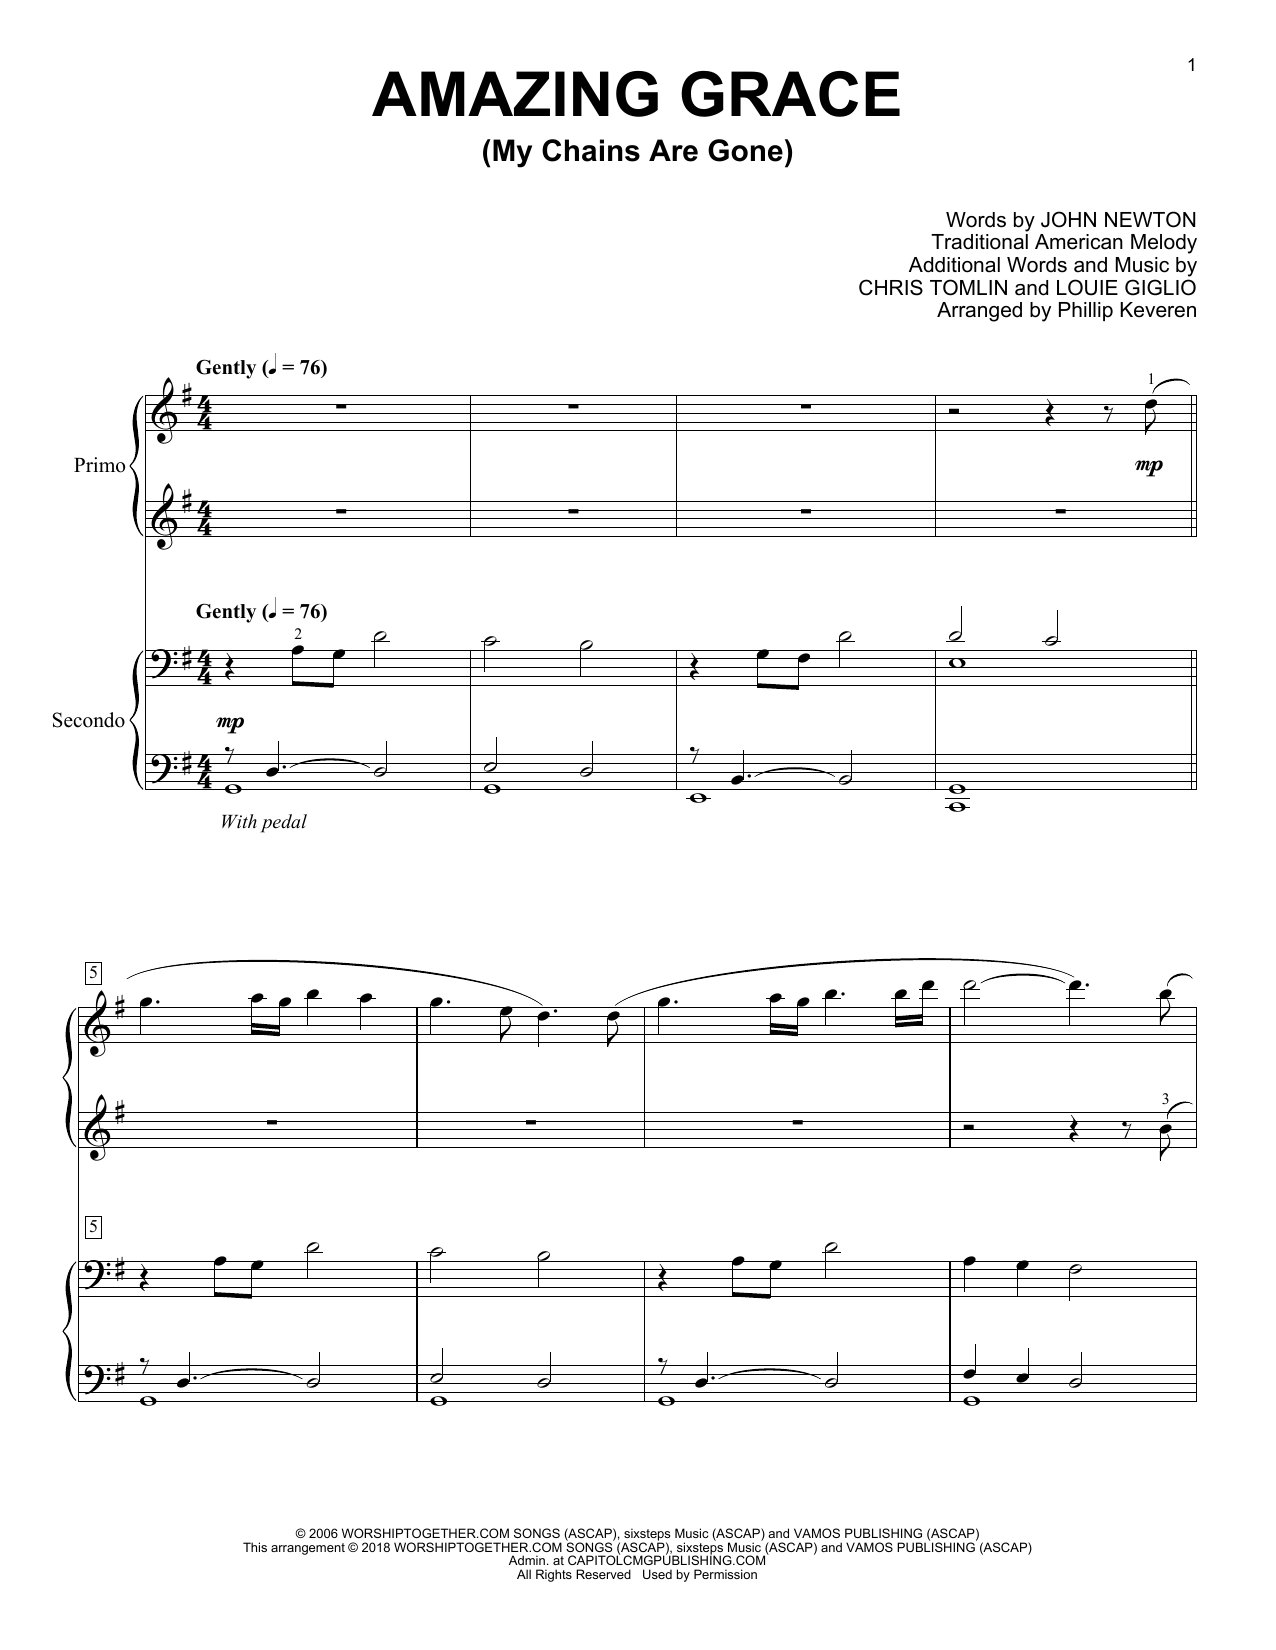 Chris Tomlin Amazing Grace (My Chains Are Gone) (arr. Phillip Keveren) sheet music notes and chords. Download Printable PDF.